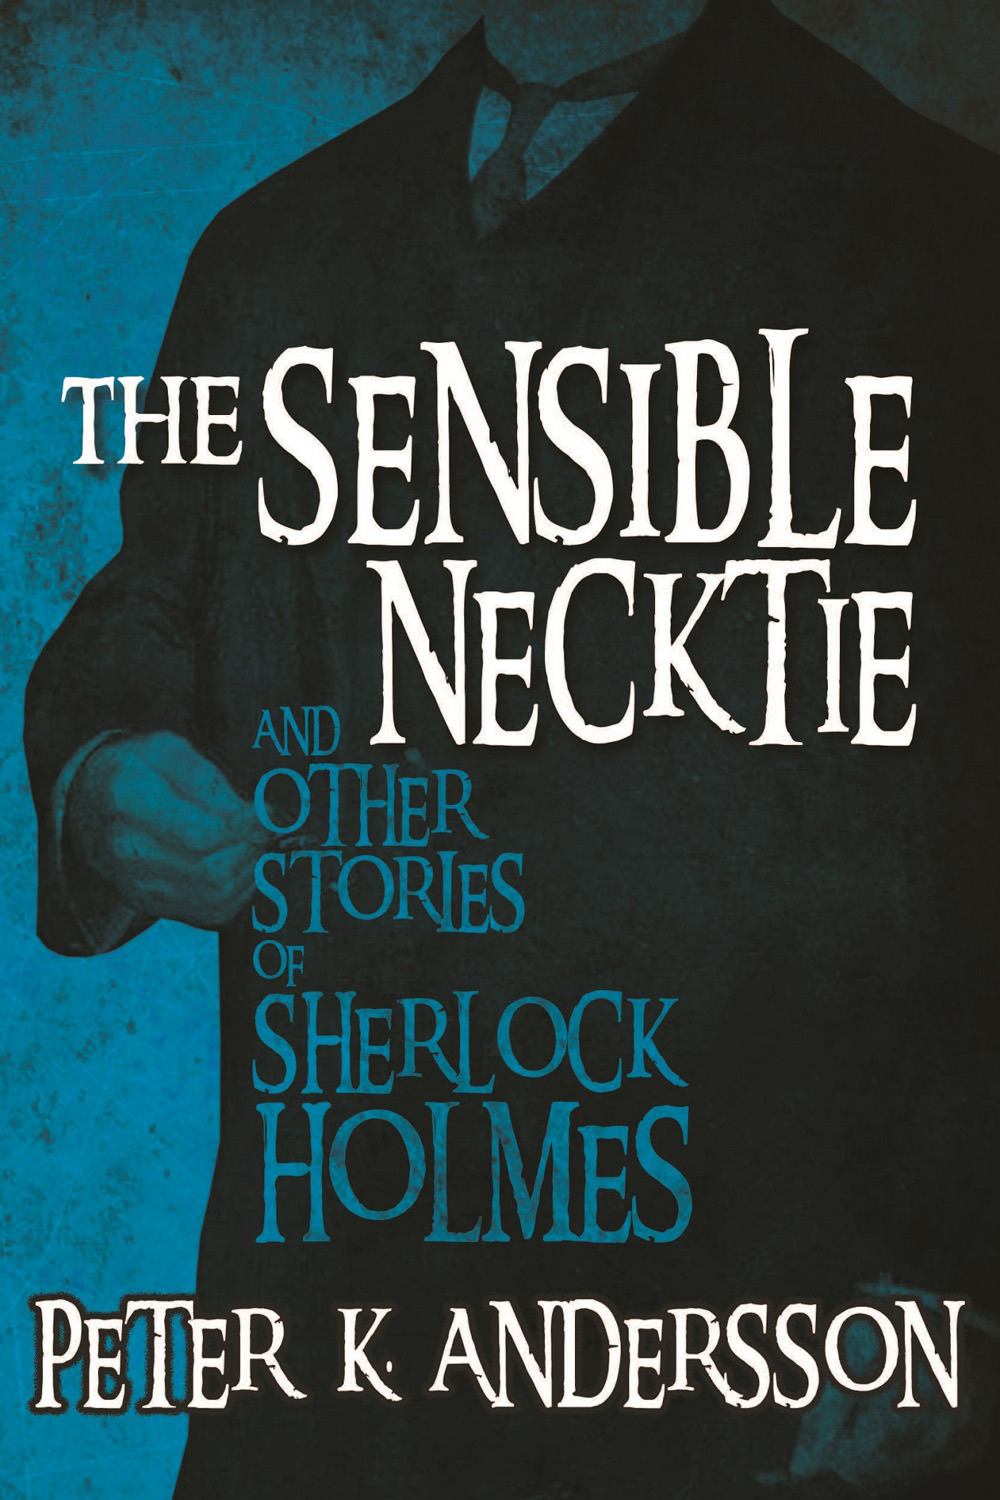 Andersson, Peter K - The Sensible Necktie and Other Stories of Sherlock Holmes, ebook